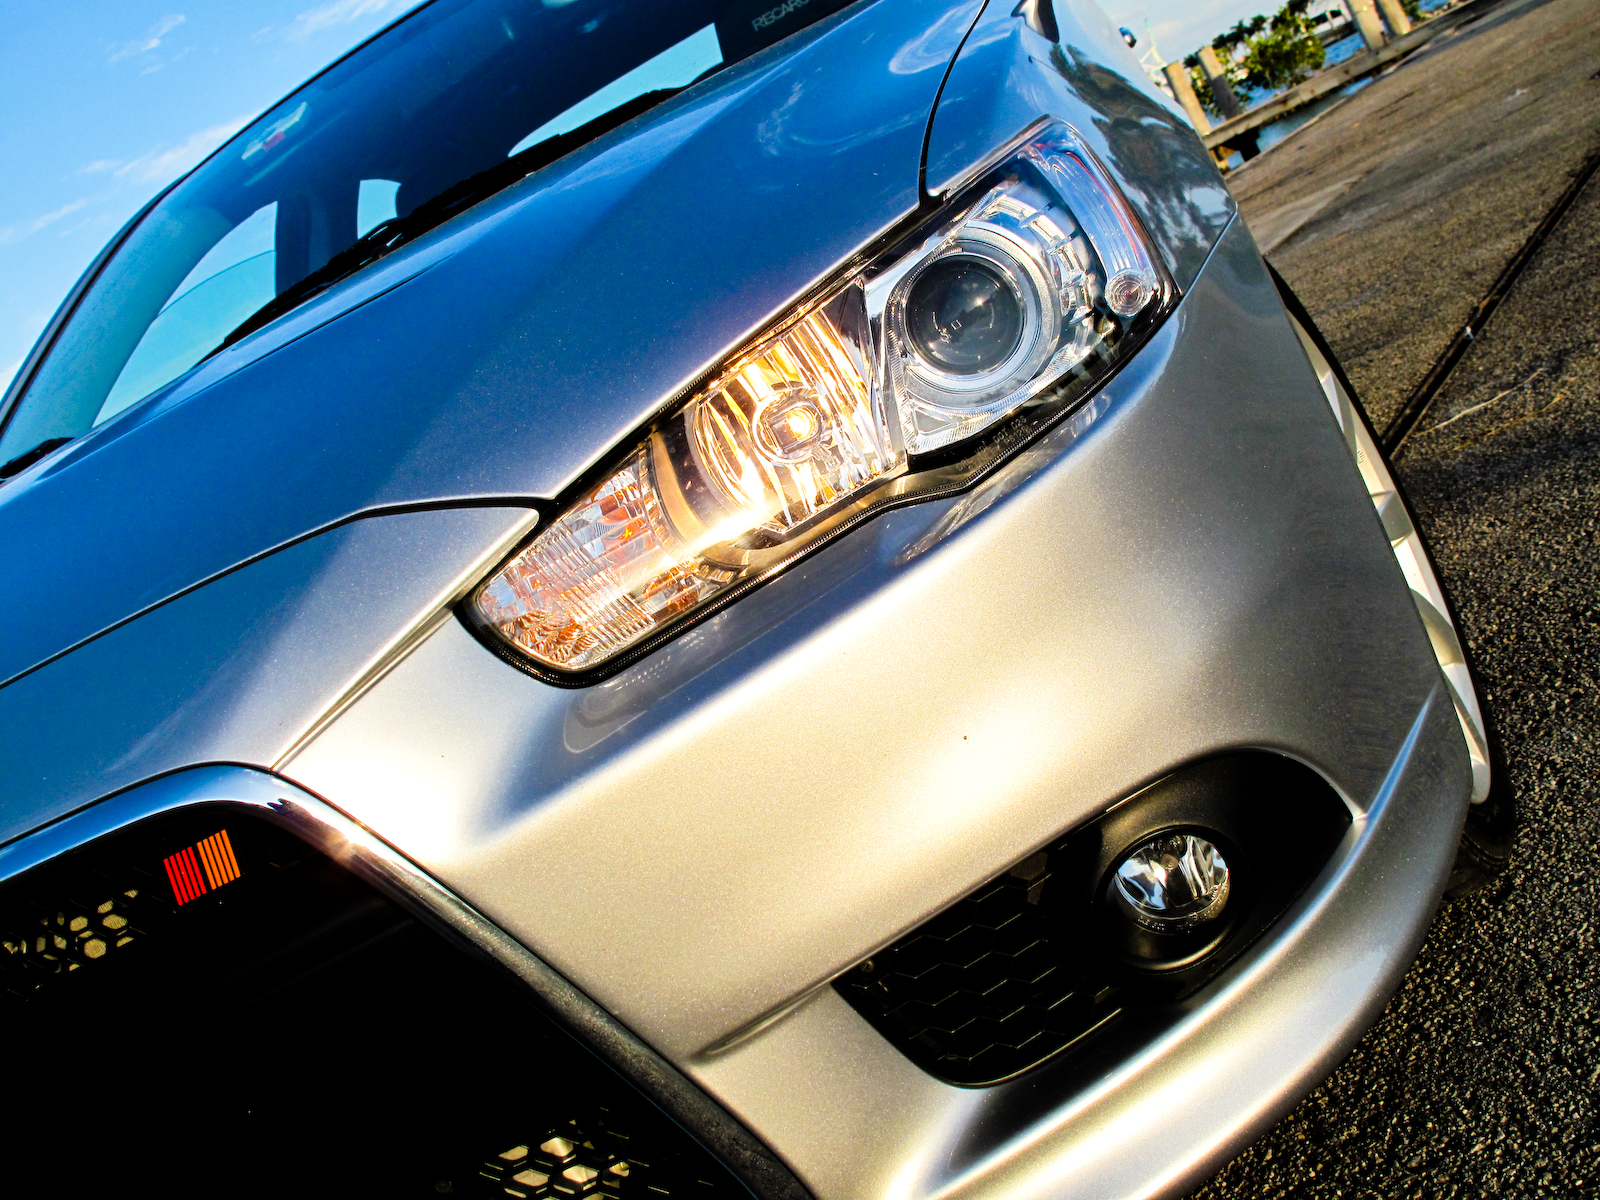 2009 Mitsubishi Lancer Ralliart Top Speed Head Lamp Colt 120 Ss